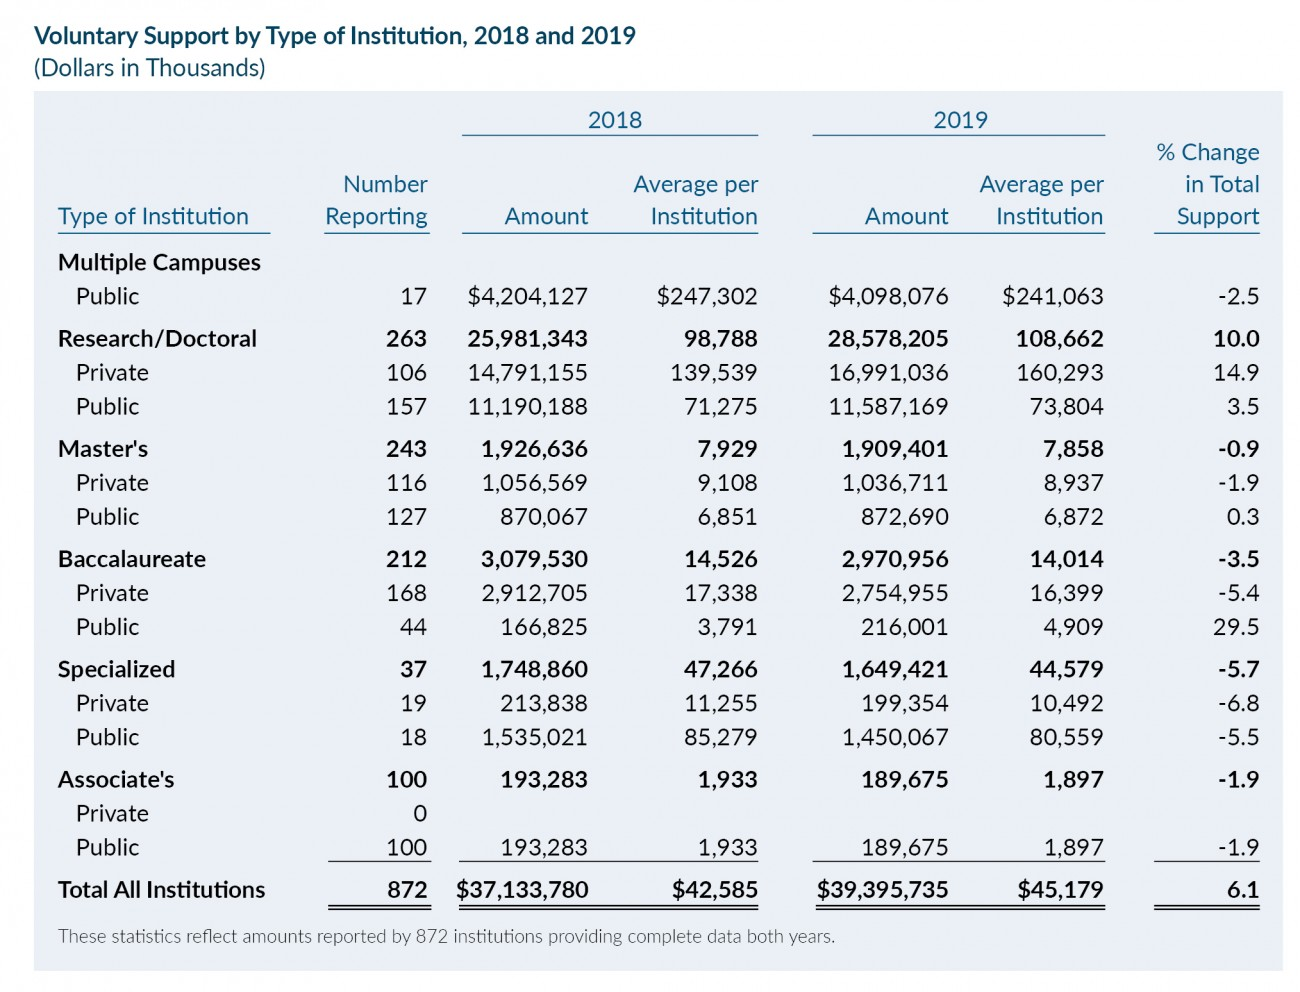 Table: Voluntary Support by Type of Institution, 2018 and 2019